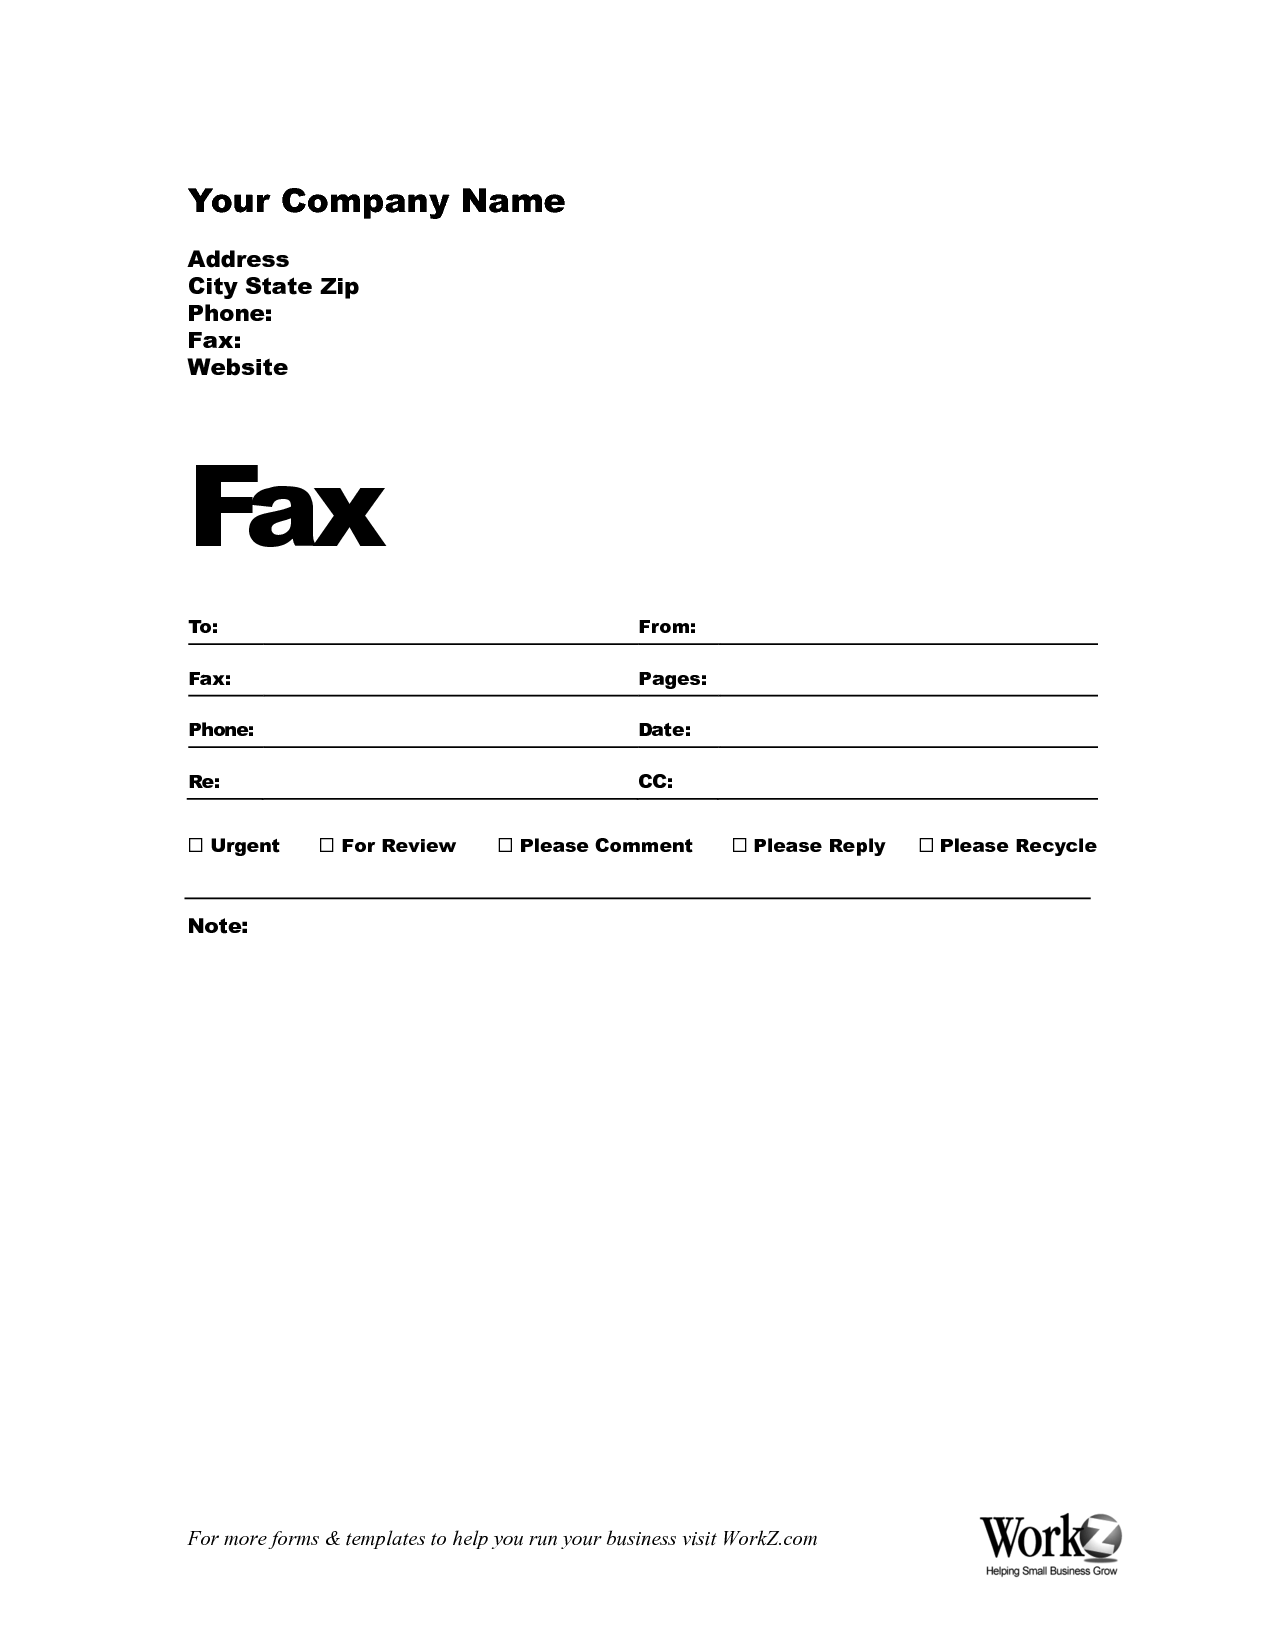 fax cover sheet sample template images pictures becuo